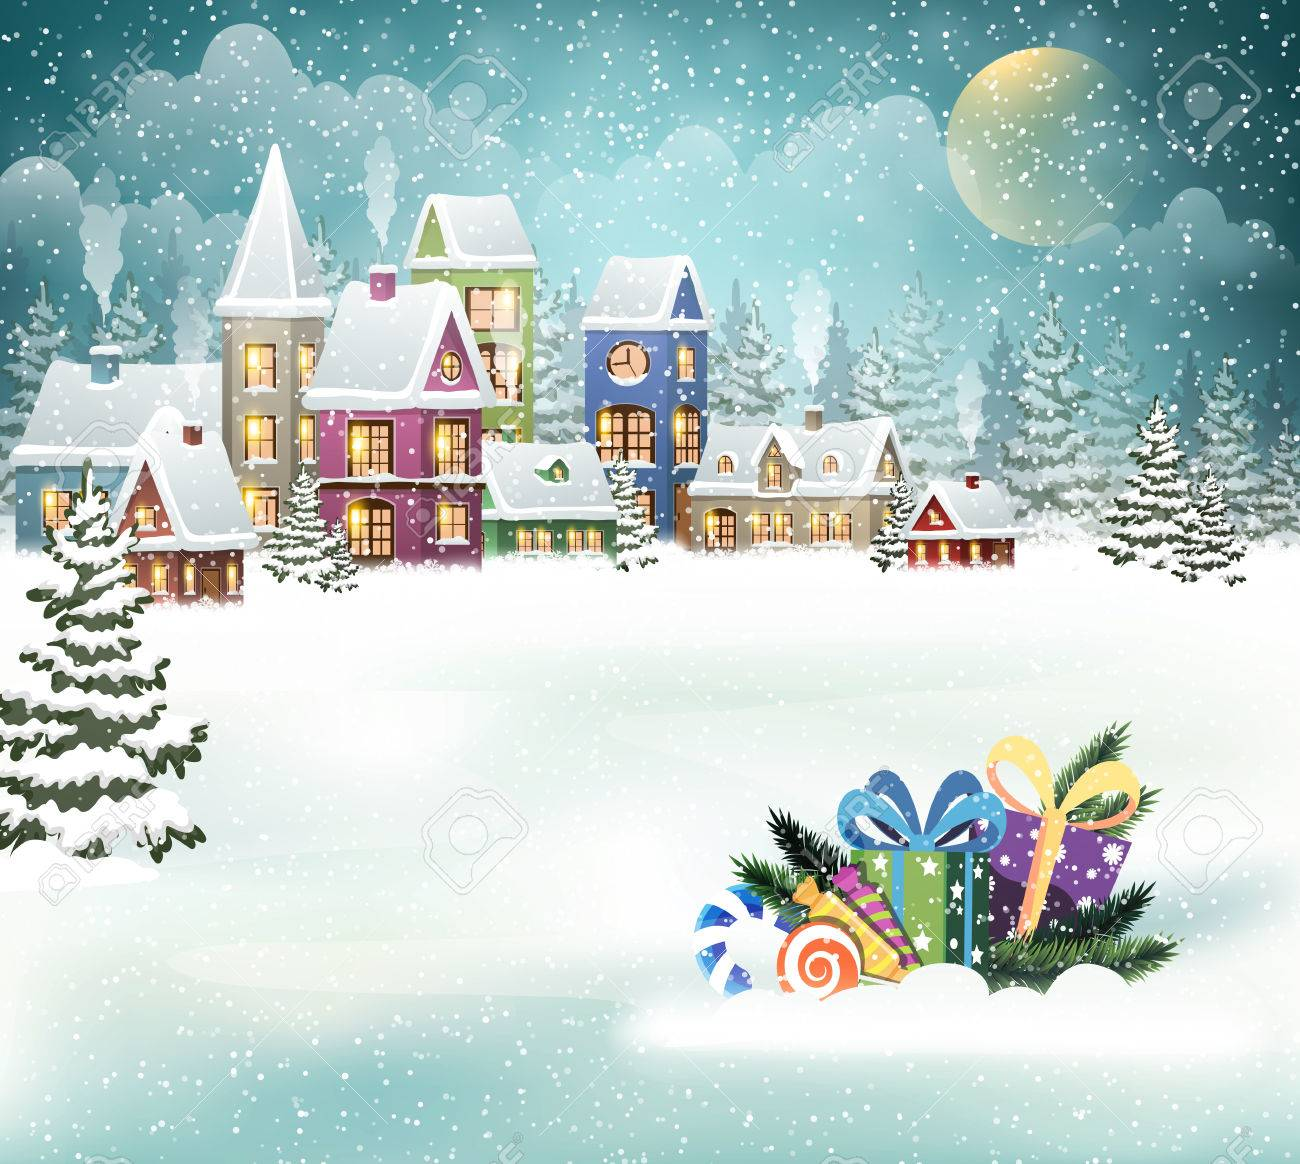 Winter holiday Christmas landscape with snowy village and Christmas presents - 67782977